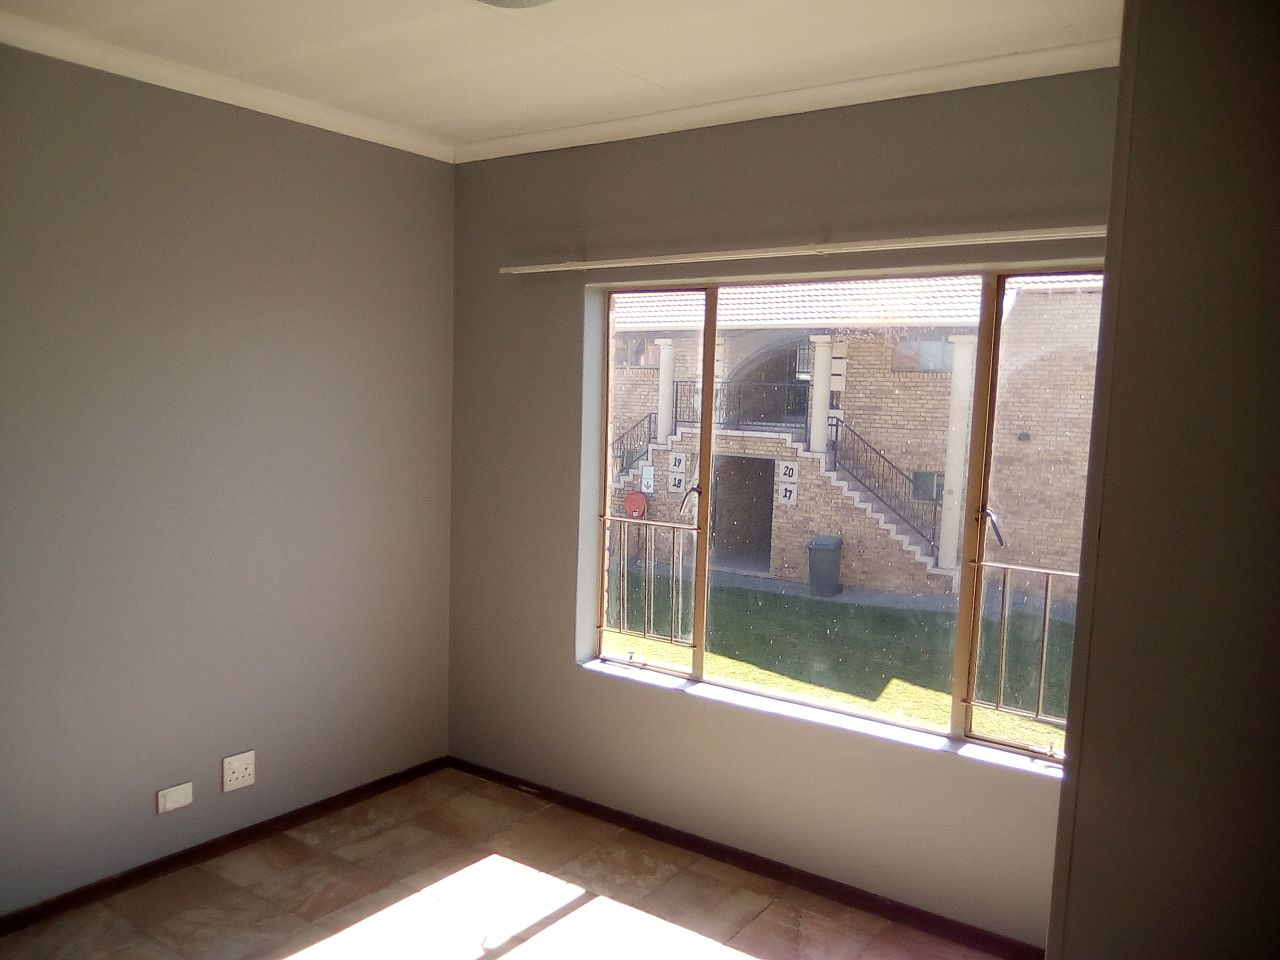 2 BED ROOM TOWNHOUSE  in Raven's Rock, Witfield/Riefontein , Boksburg